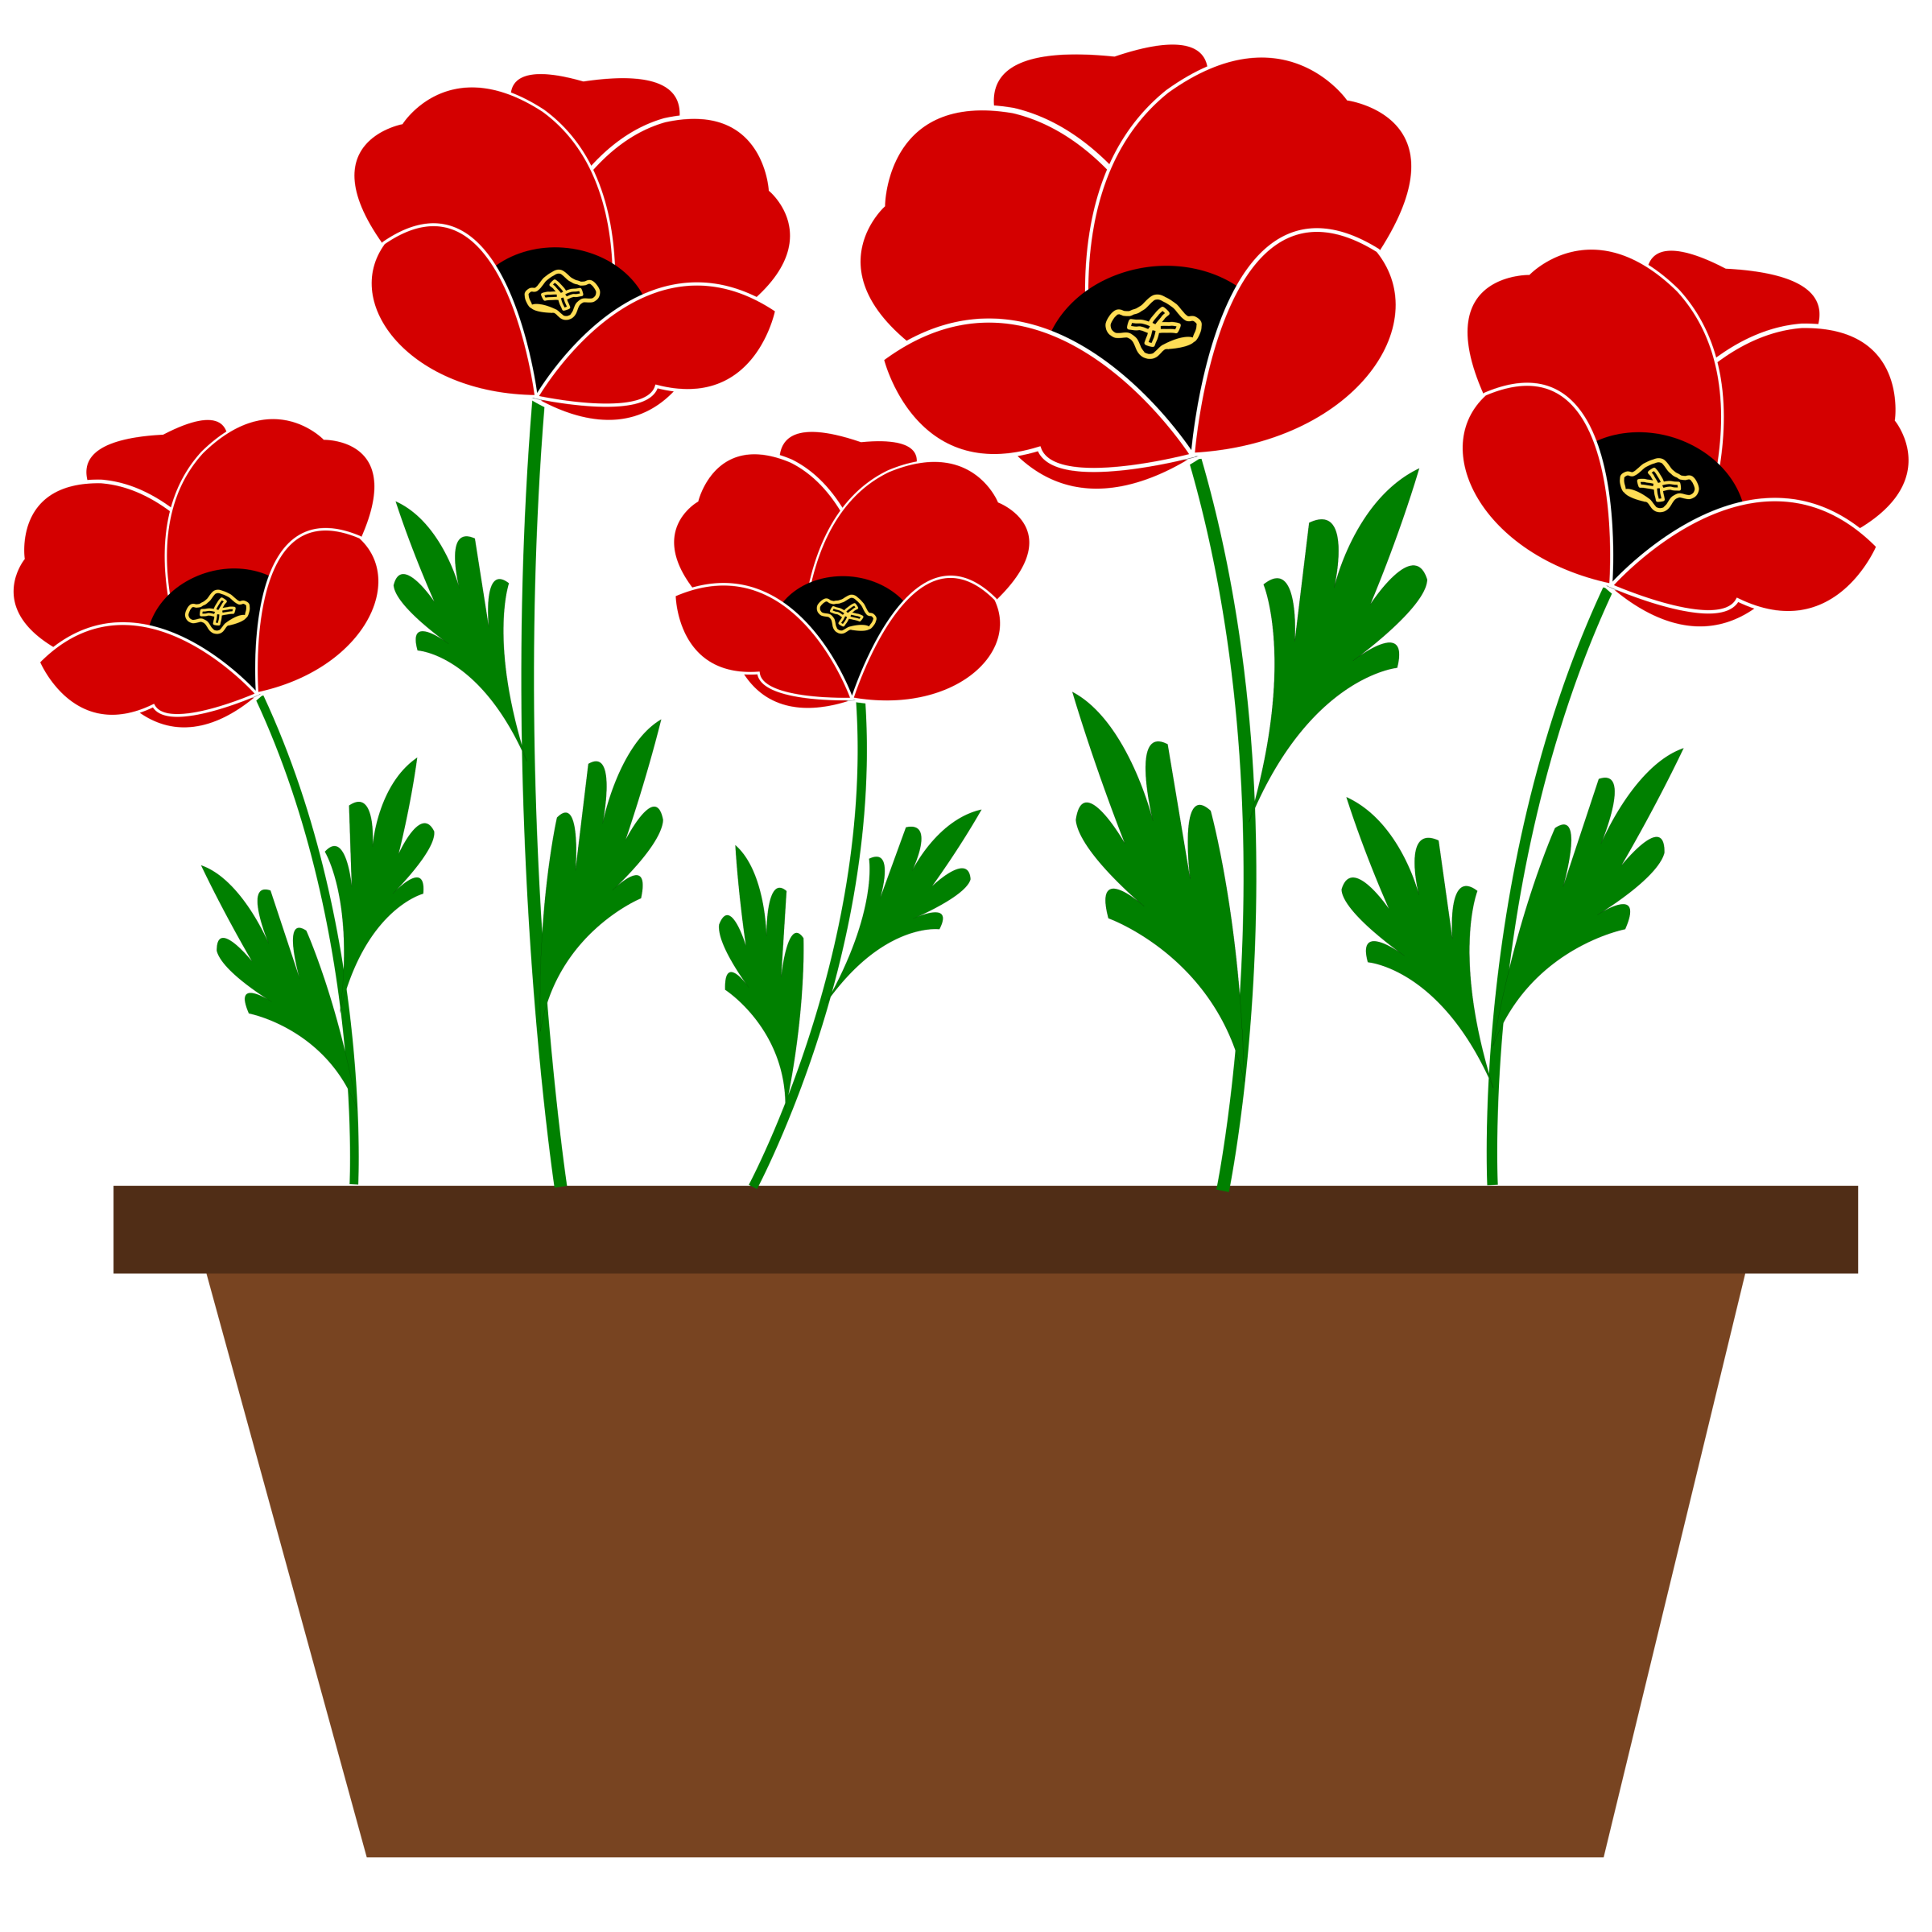 Poppies in a pot, just like that! by oldifluff